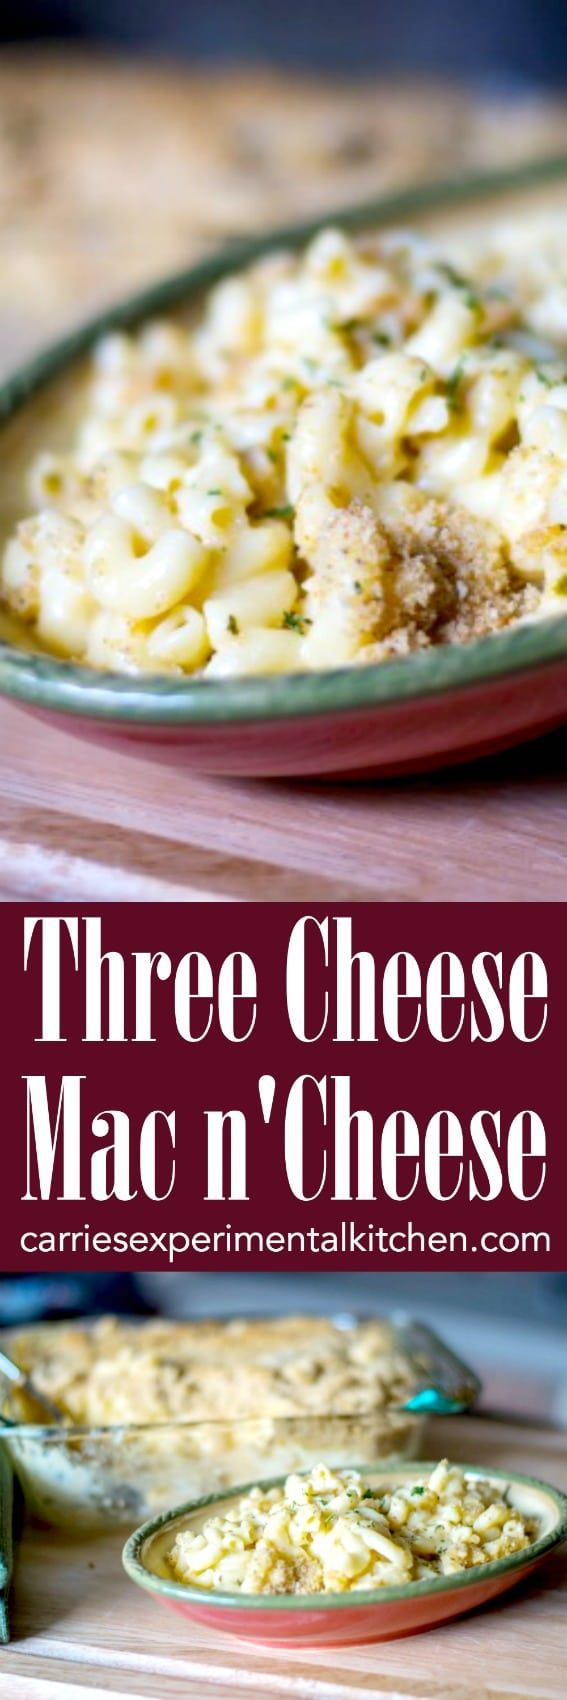 This Three Cheese Mac n' Cheese is so creamy. It's made with Velveeta, Asiago and Pecorino Romano cheeses; then baked until hot and bubbly. #pasta #casserole #cheese  ##macandcheese